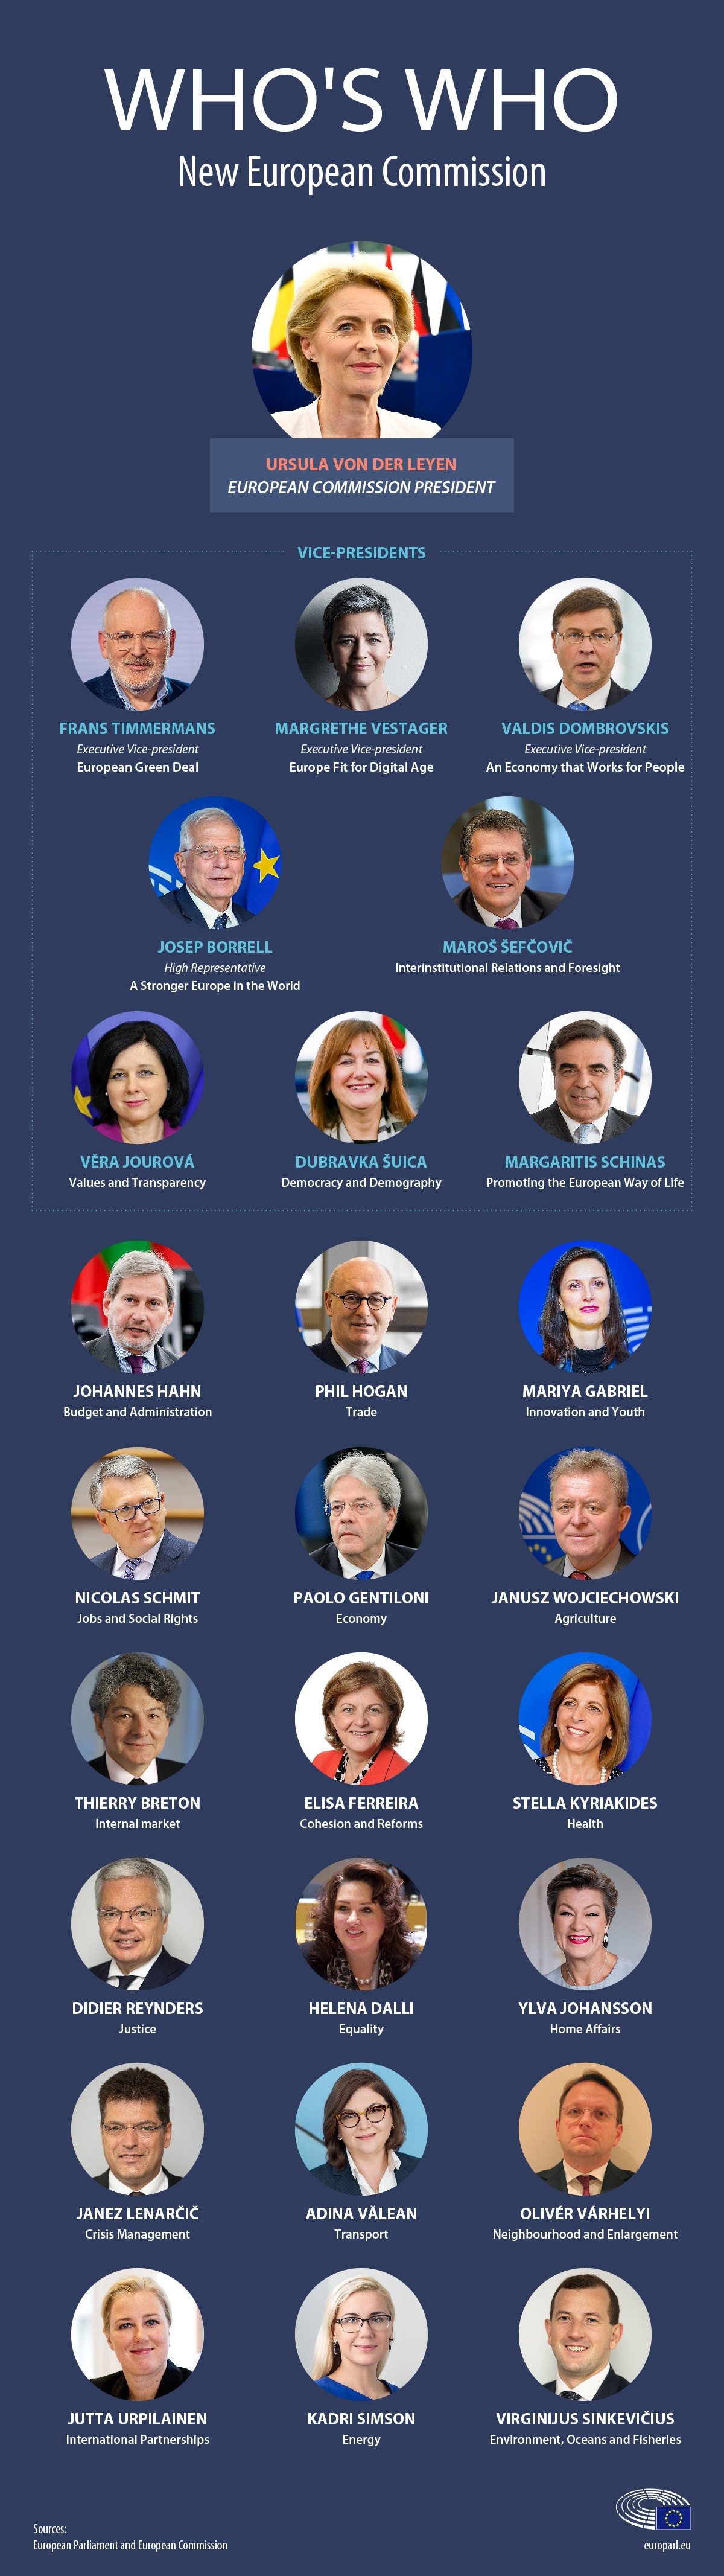 Infographic with photos of each of the new members of the European Commission, describing their areas of responsibility.